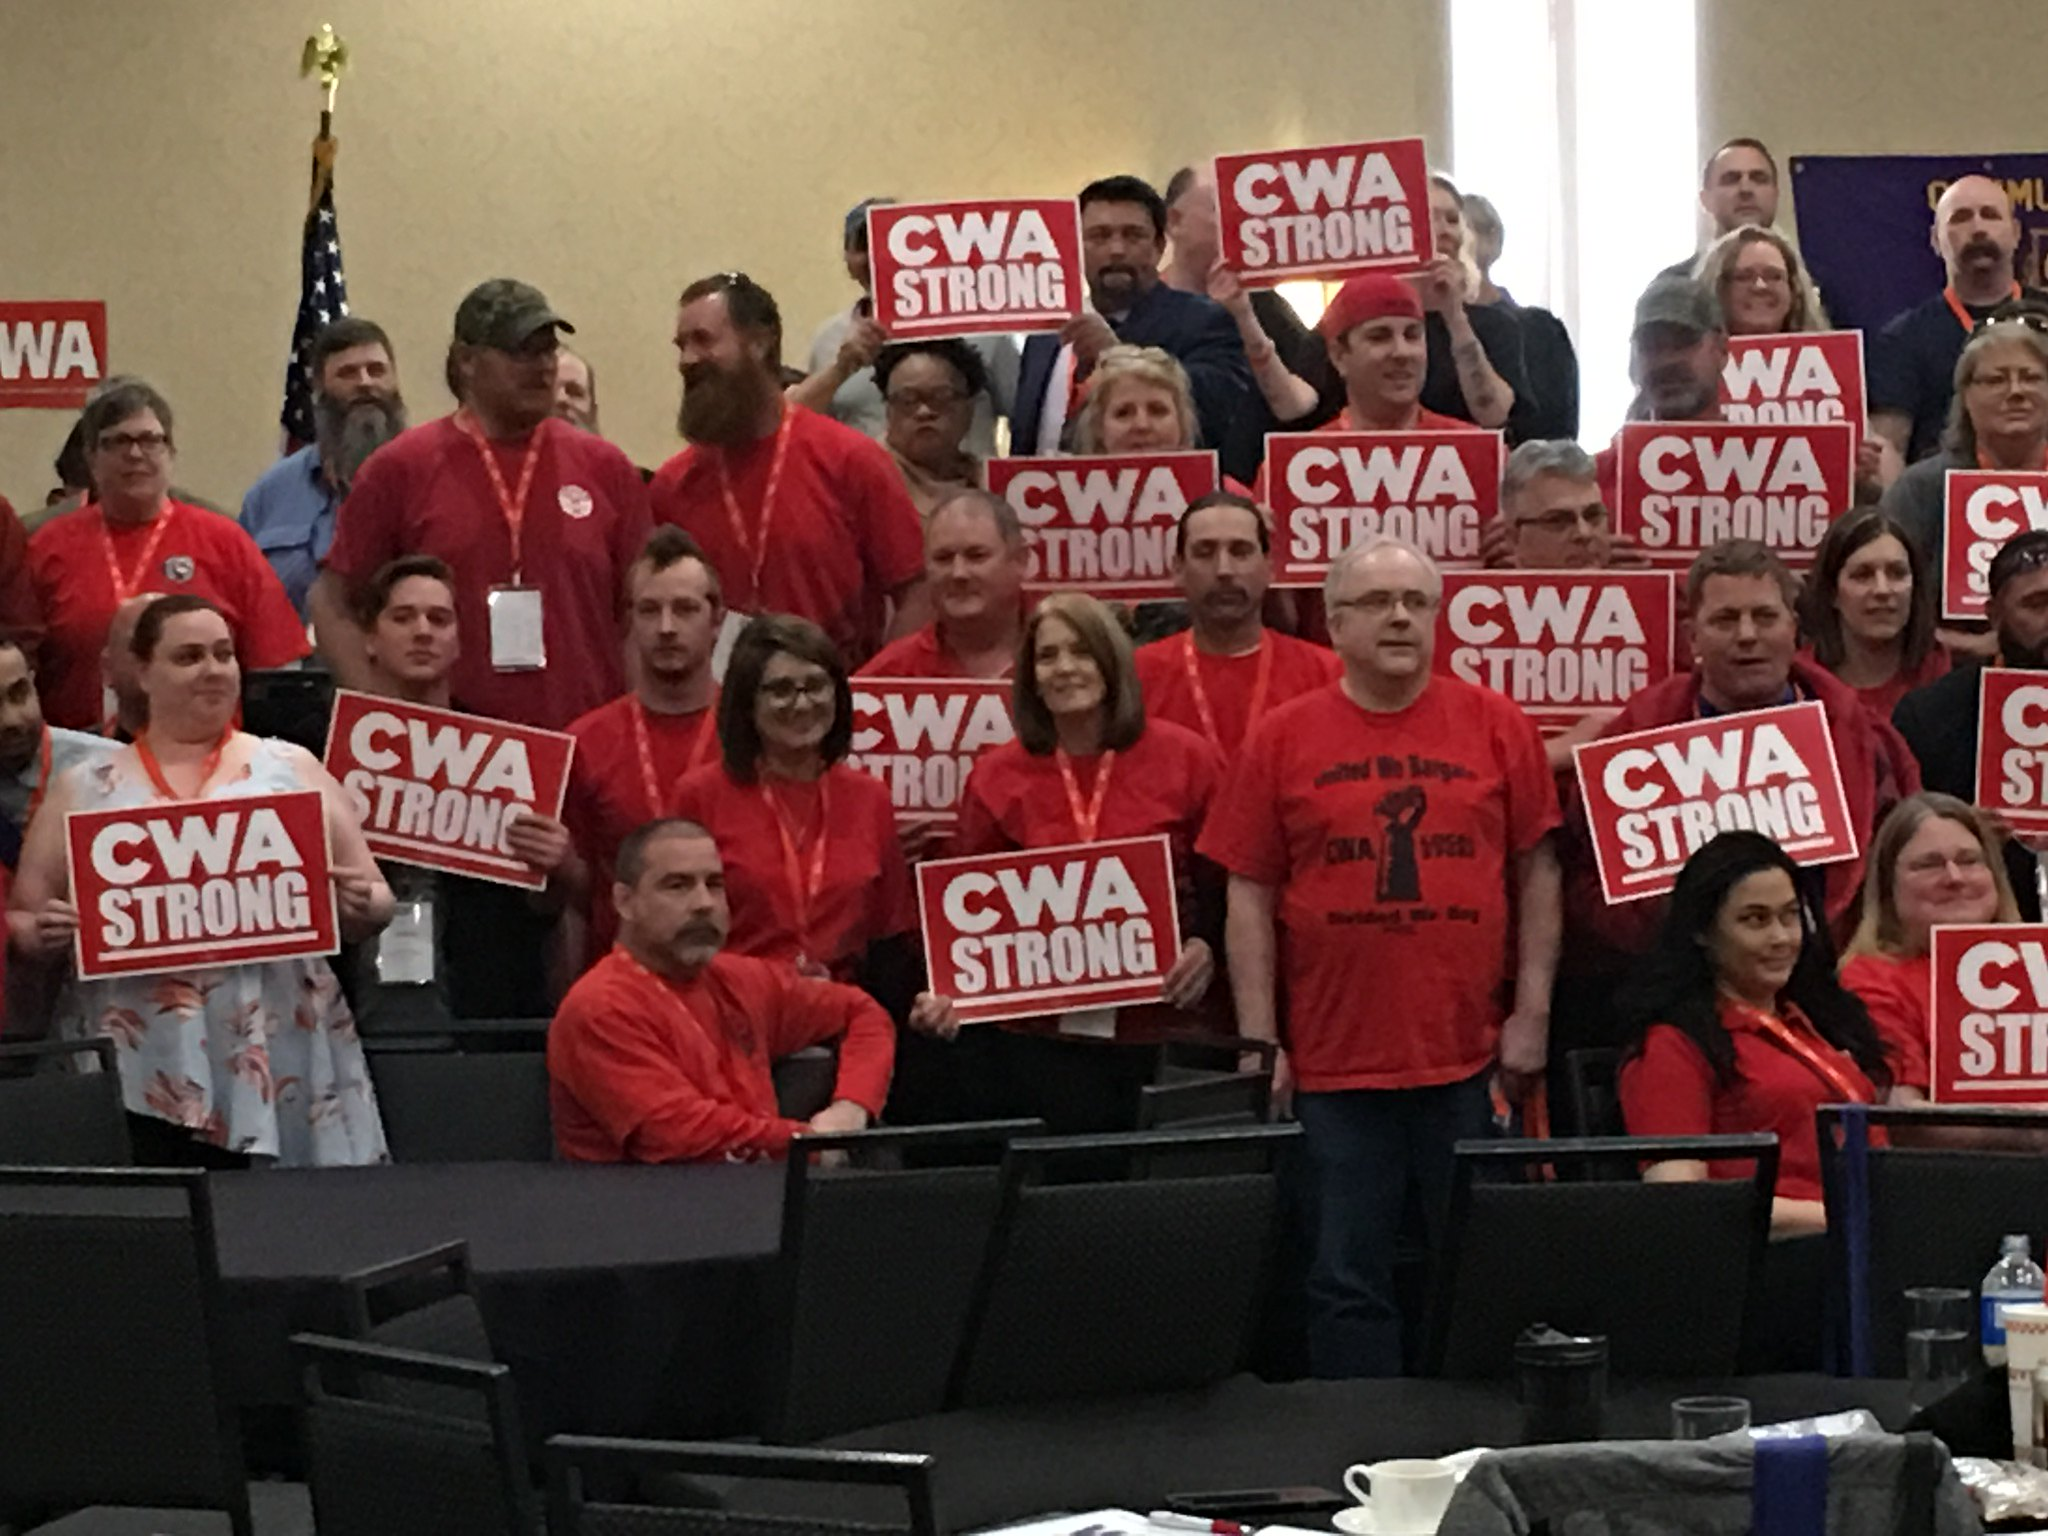 CWA STRONG at the 2017 District 7 Meeting